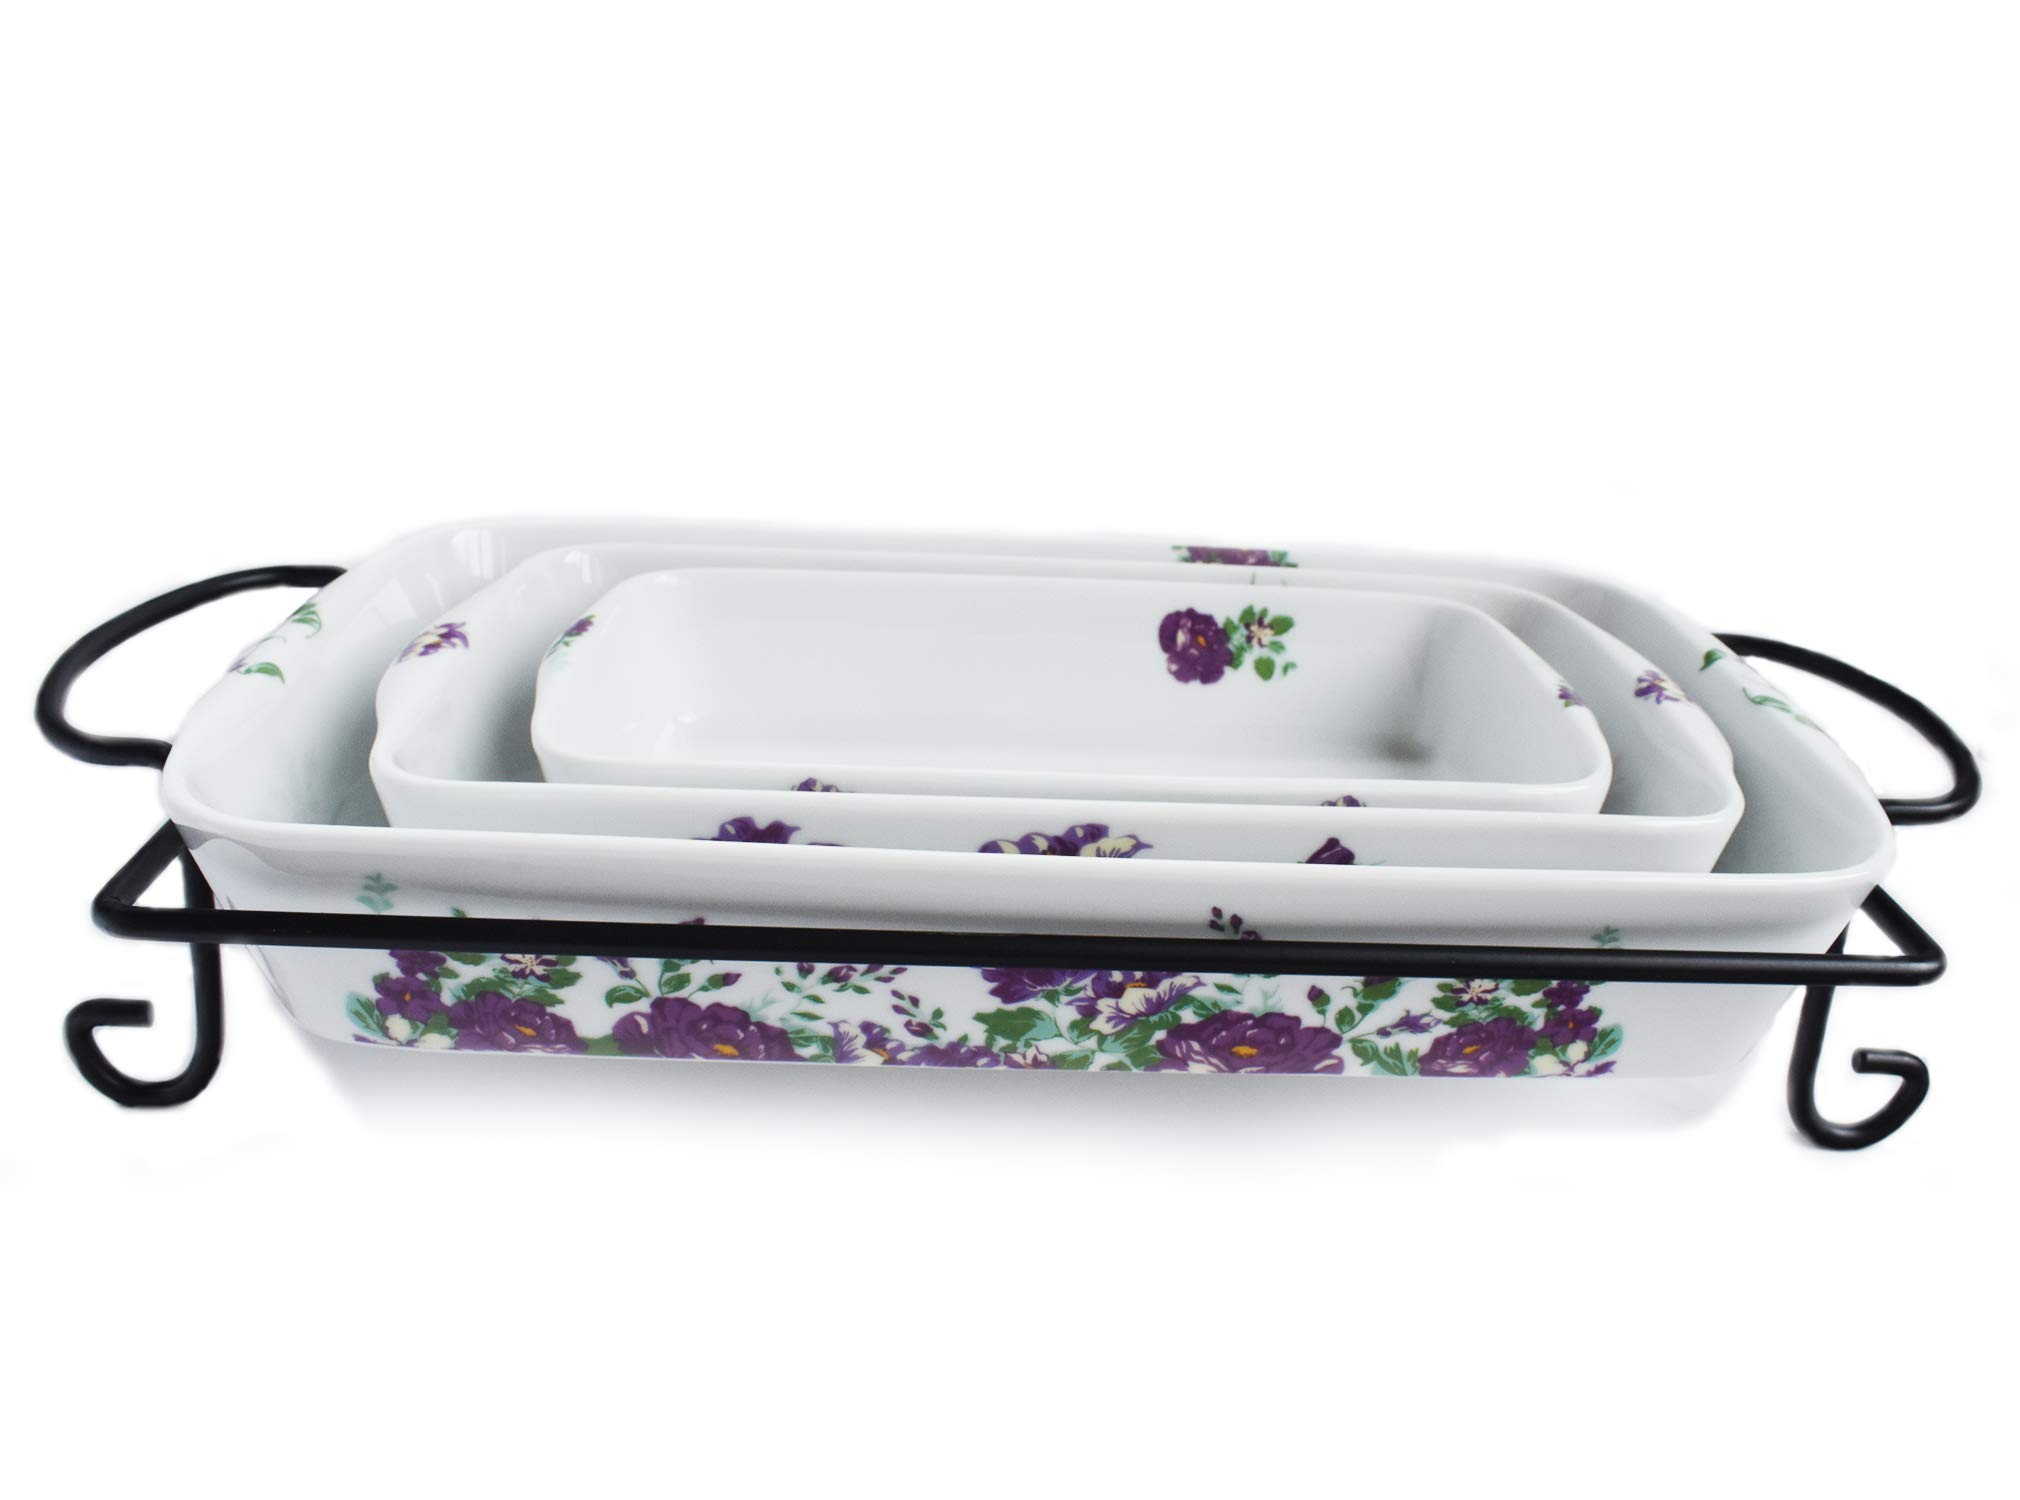 Darbie's Rose Amethyst 4 Piece Bake/Serve by Halo by Darbie Angell (Image #1)